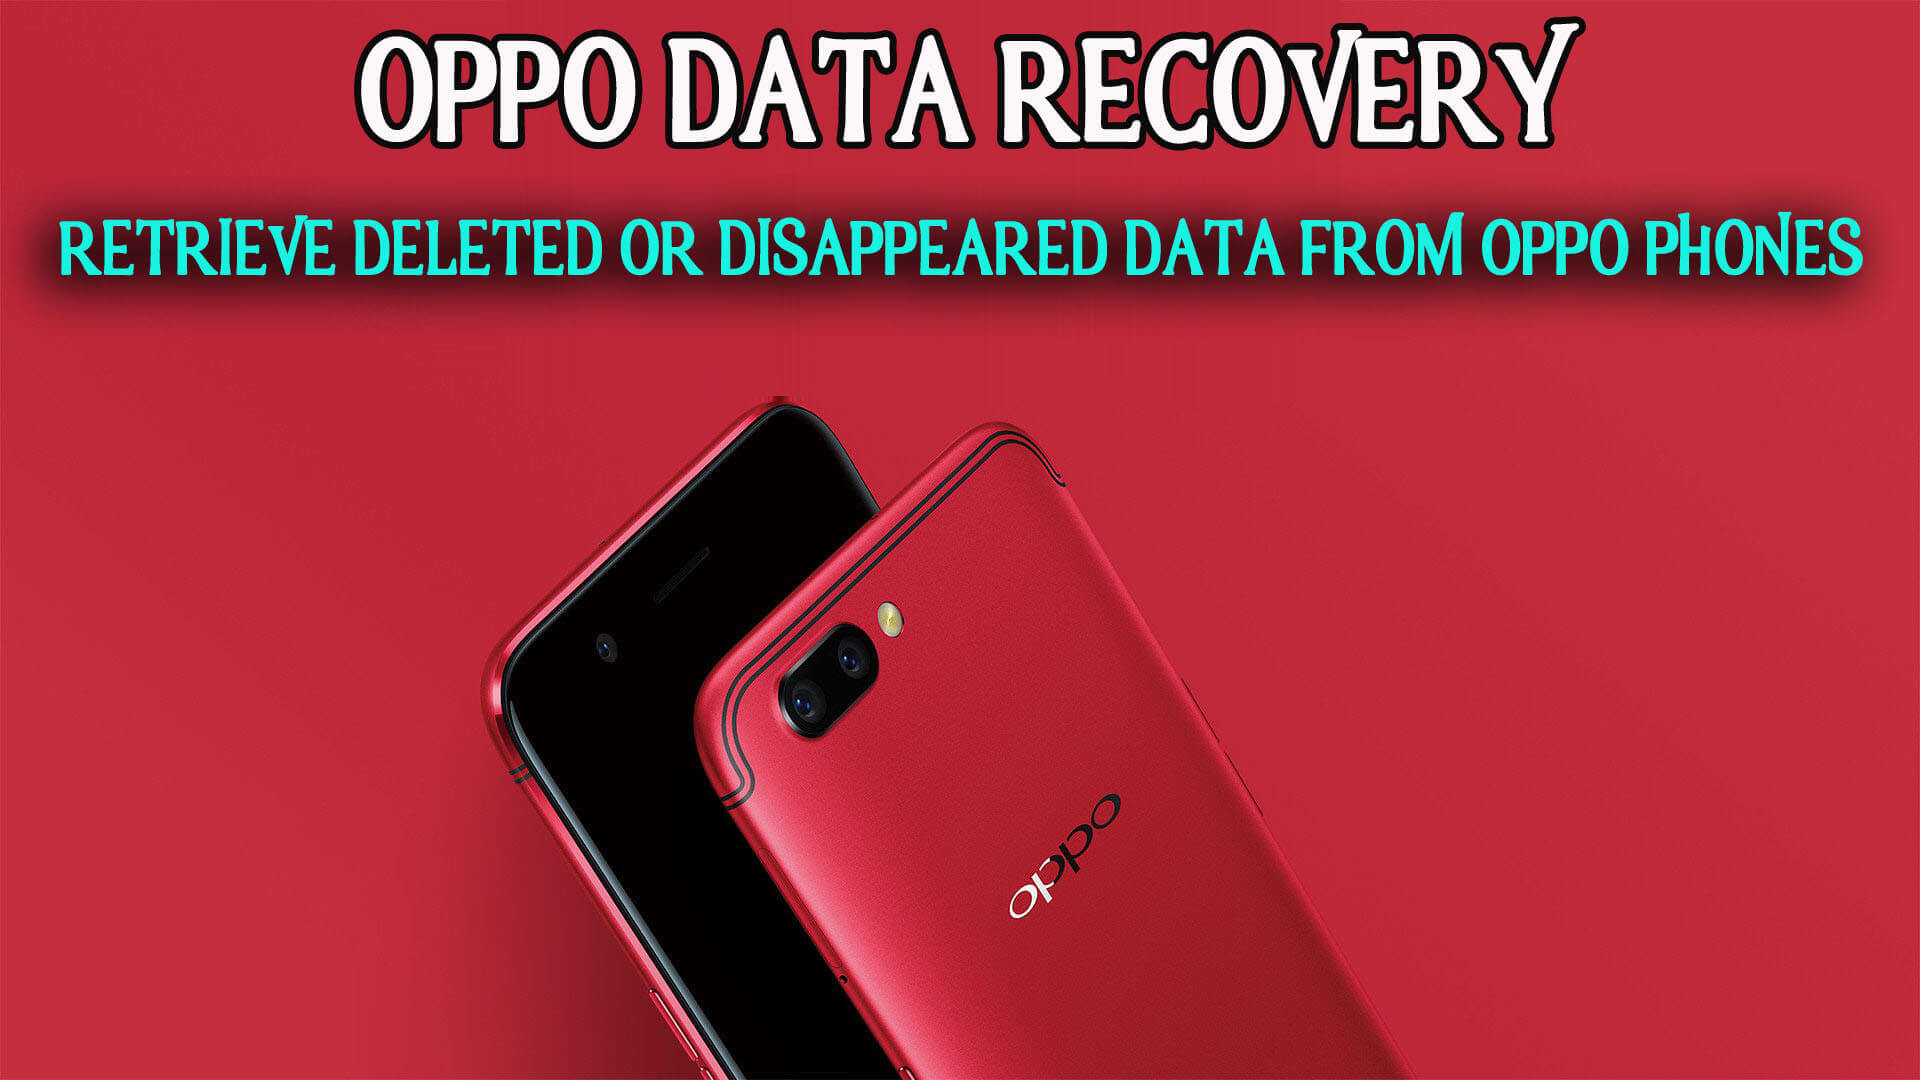 Oppo Data Recovery- Retrieve Deleted Or Disappeared Data From Oppo Phones (2019 Updated)